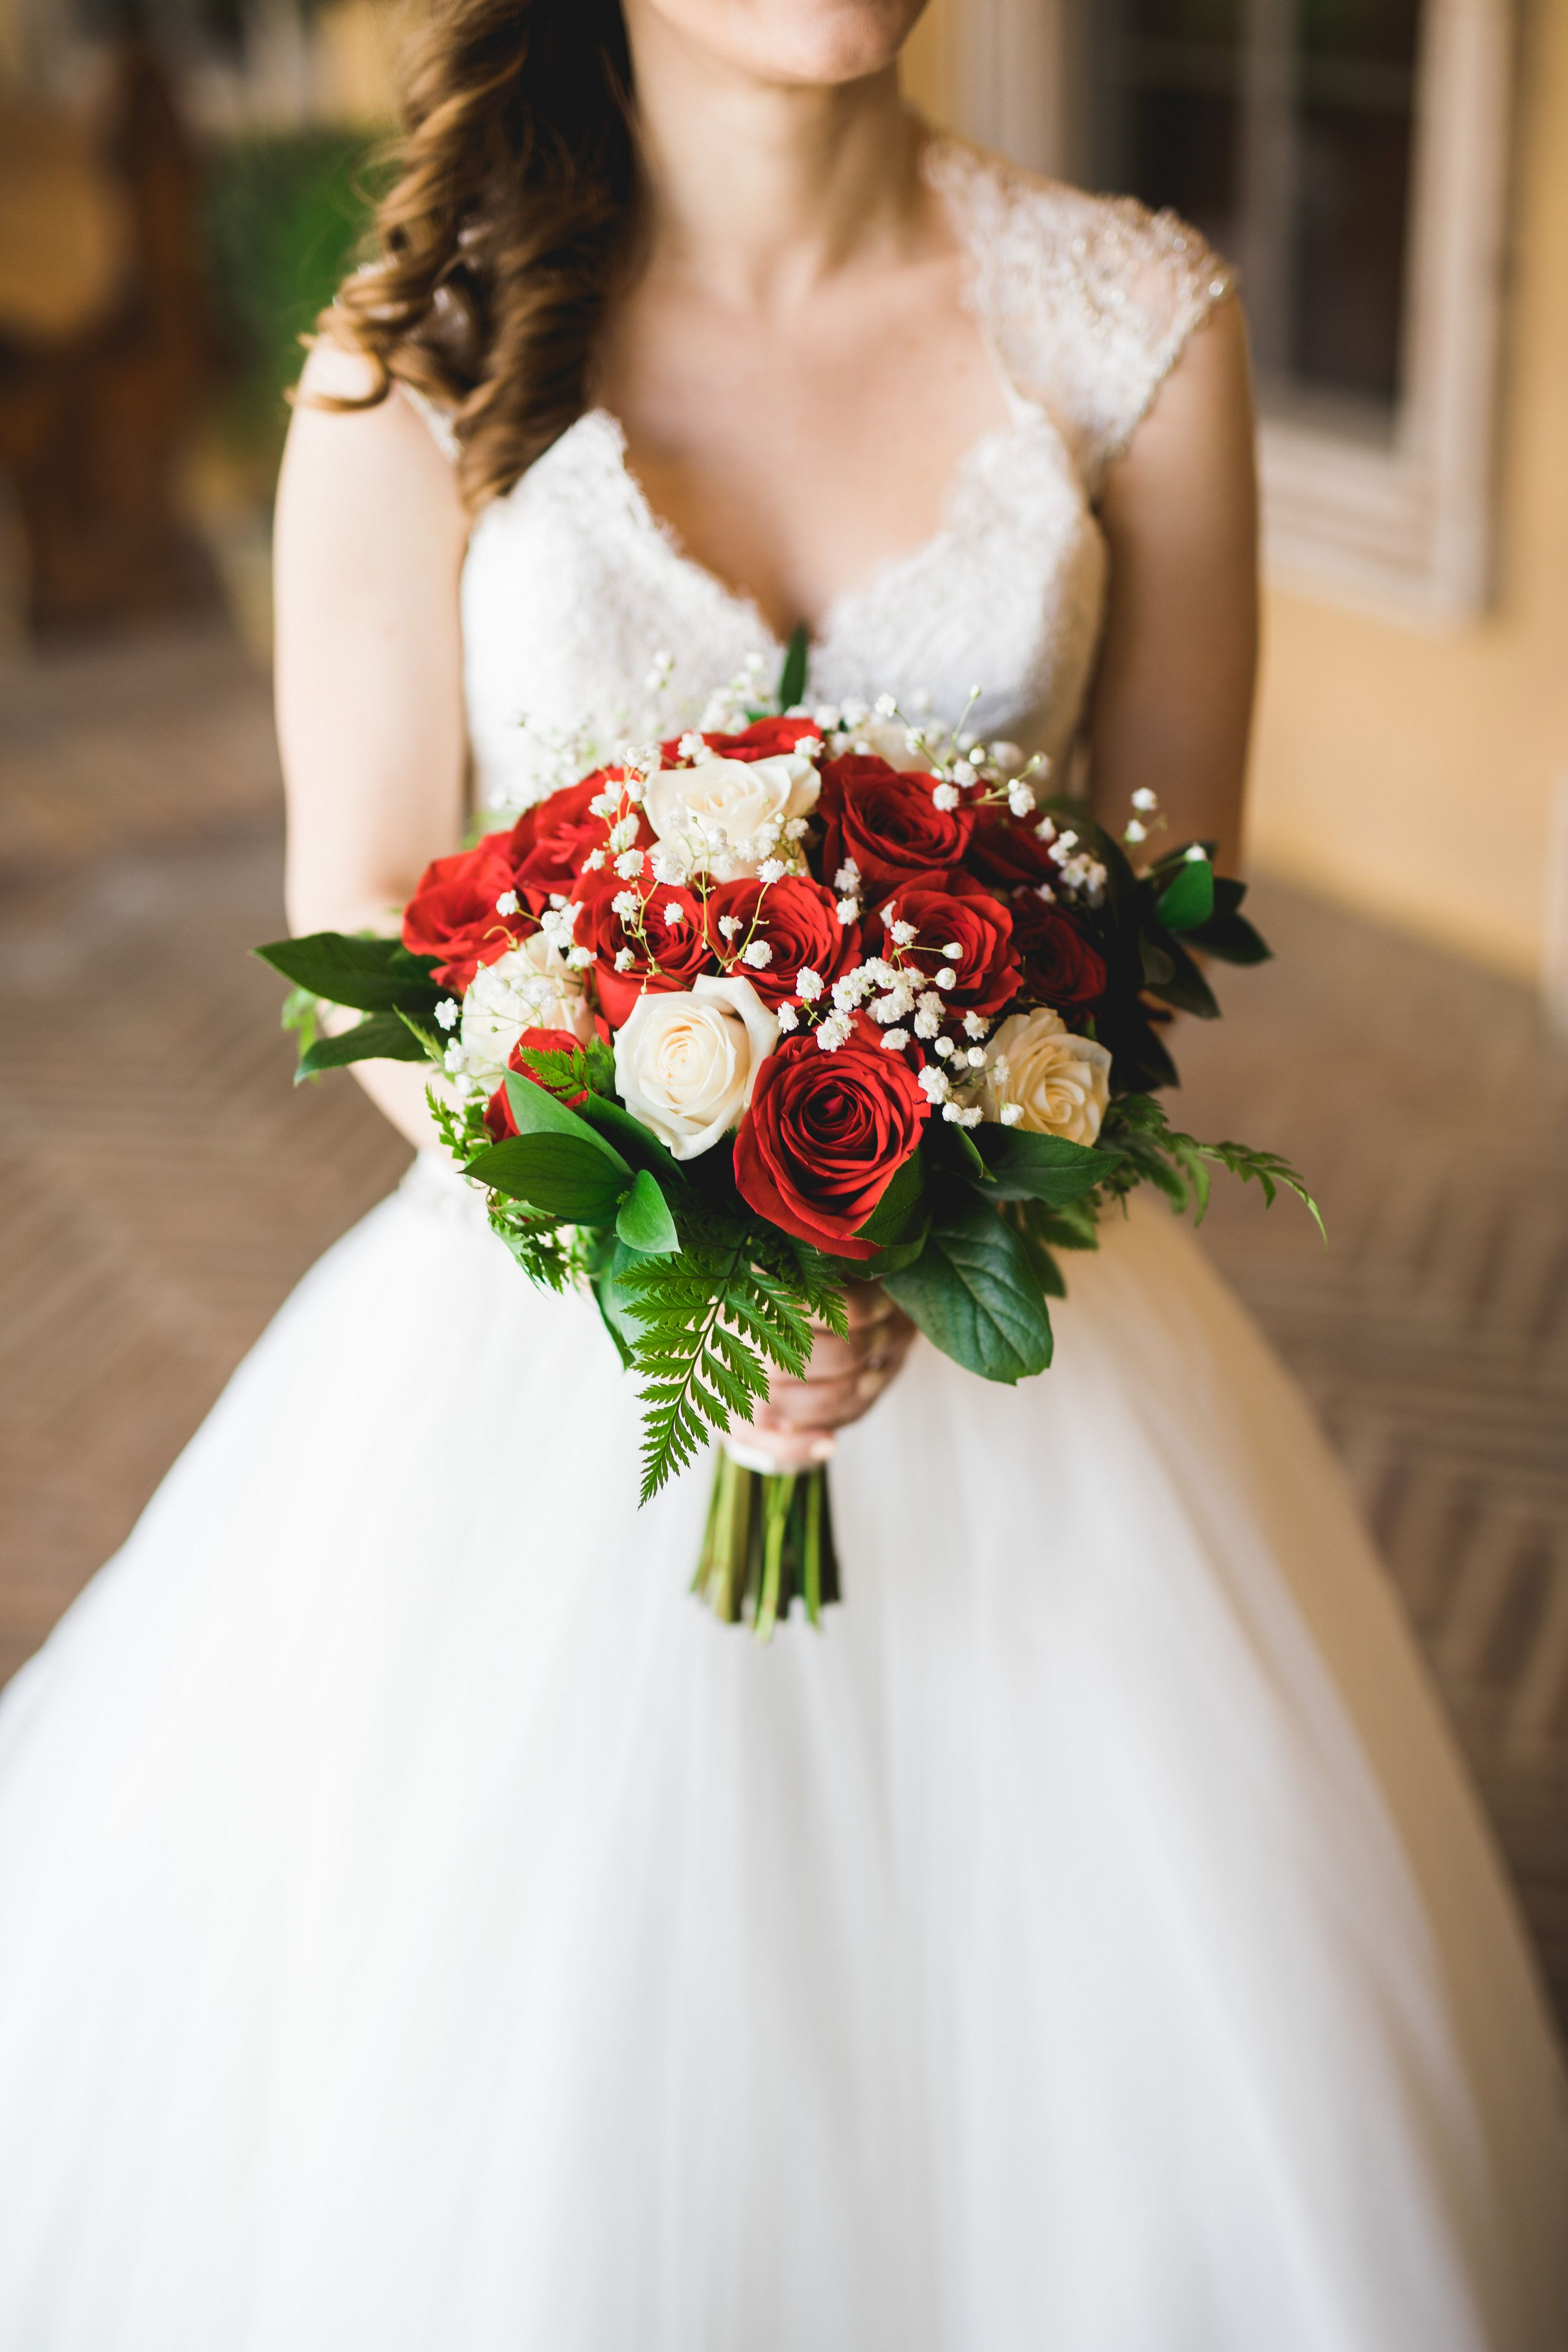 Bride Holding A Bouquet Of White Red Roses With Baby S Breath Robert Godridge Photography Villasiena C Red Rose Bouquet Babys Breath Bouquet Rose Bouquet [ 4000 x 2667 Pixel ]